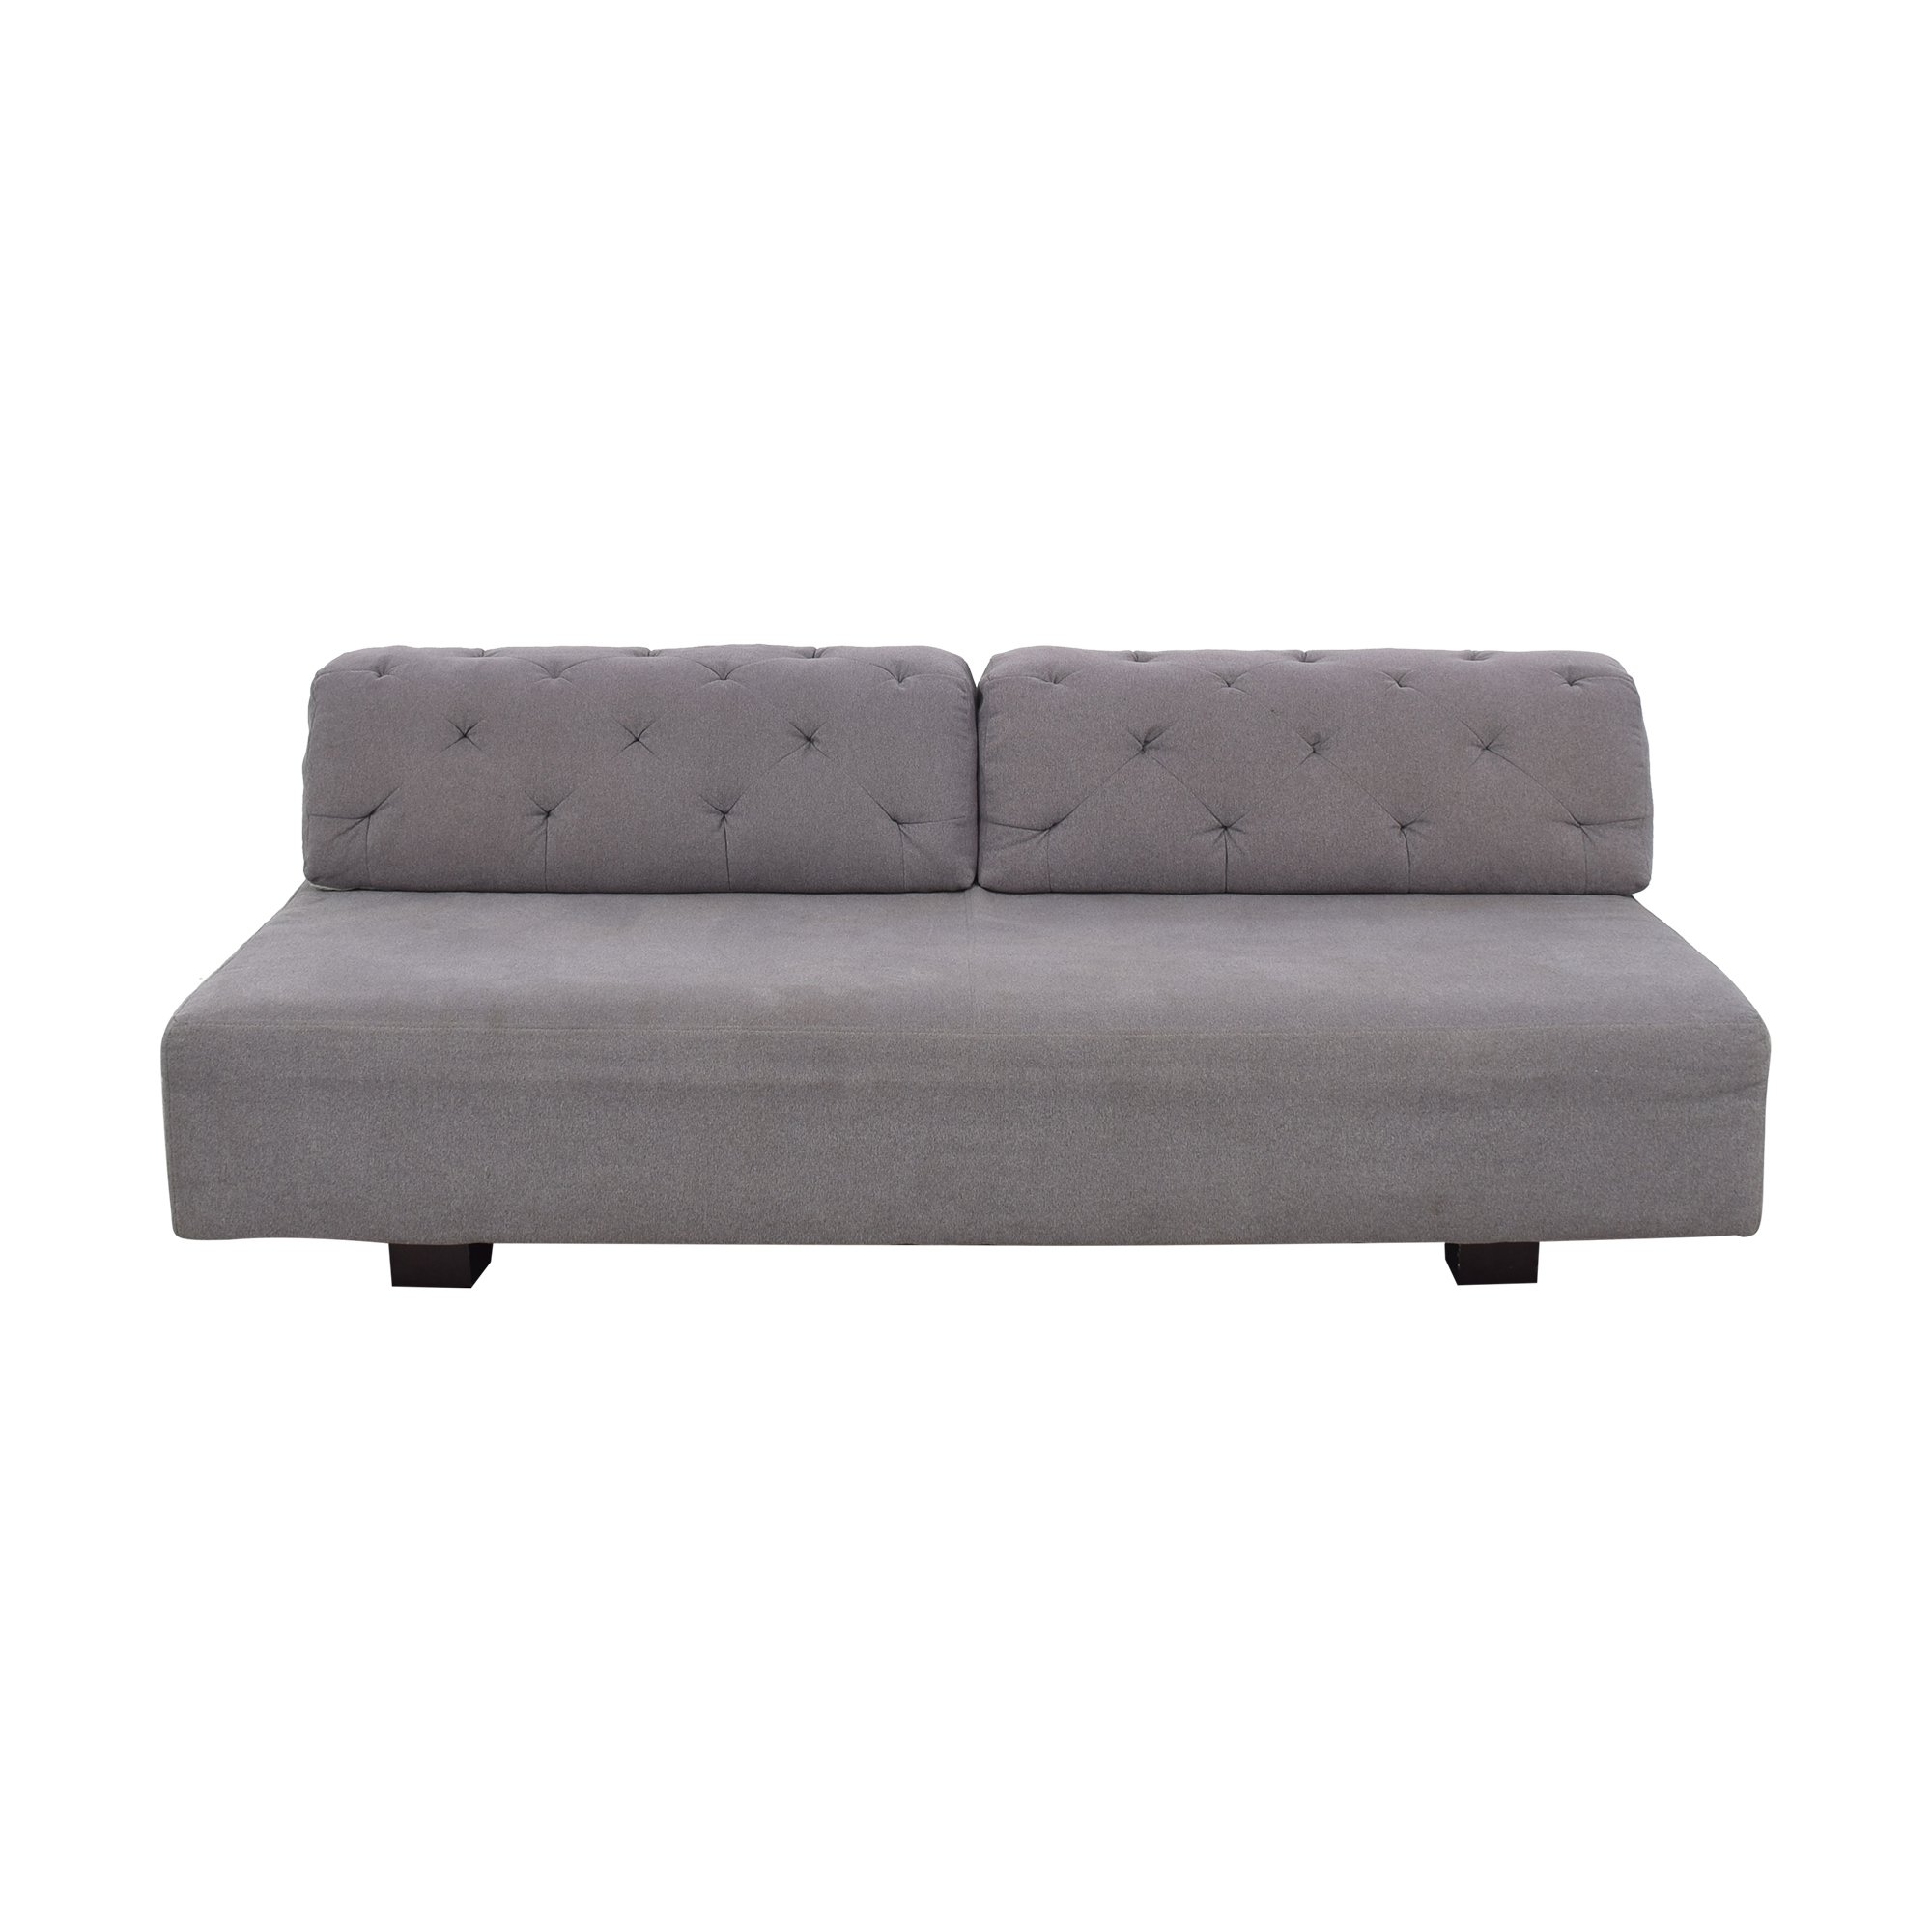 West Elm West Elm Tillary Sofa with Tufted Back Cushions on sale